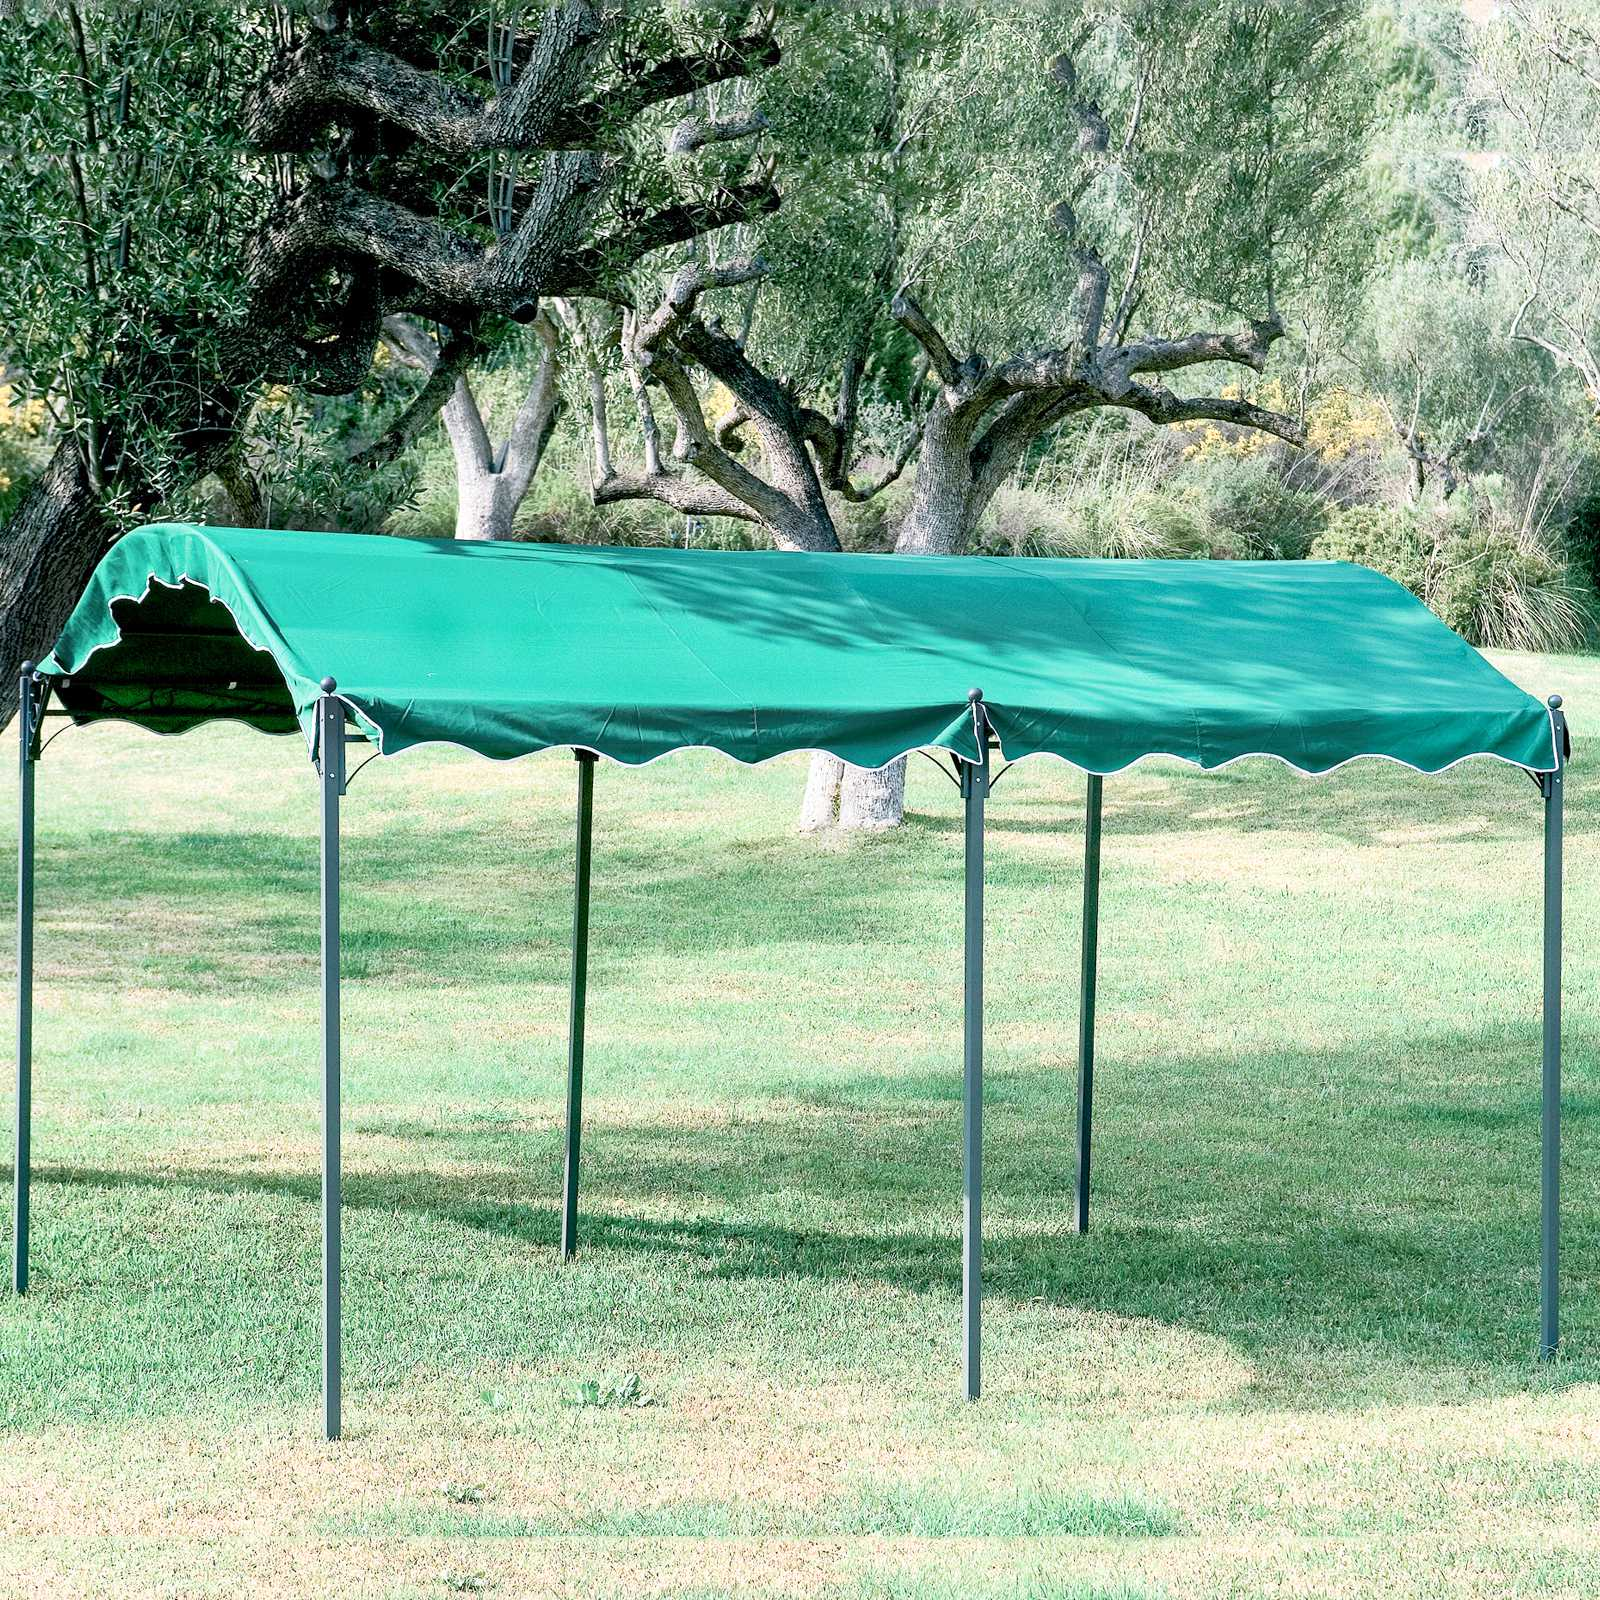 Gazebo Car Port 300x400x250h in acciaio verniciato e top in poliestere verde